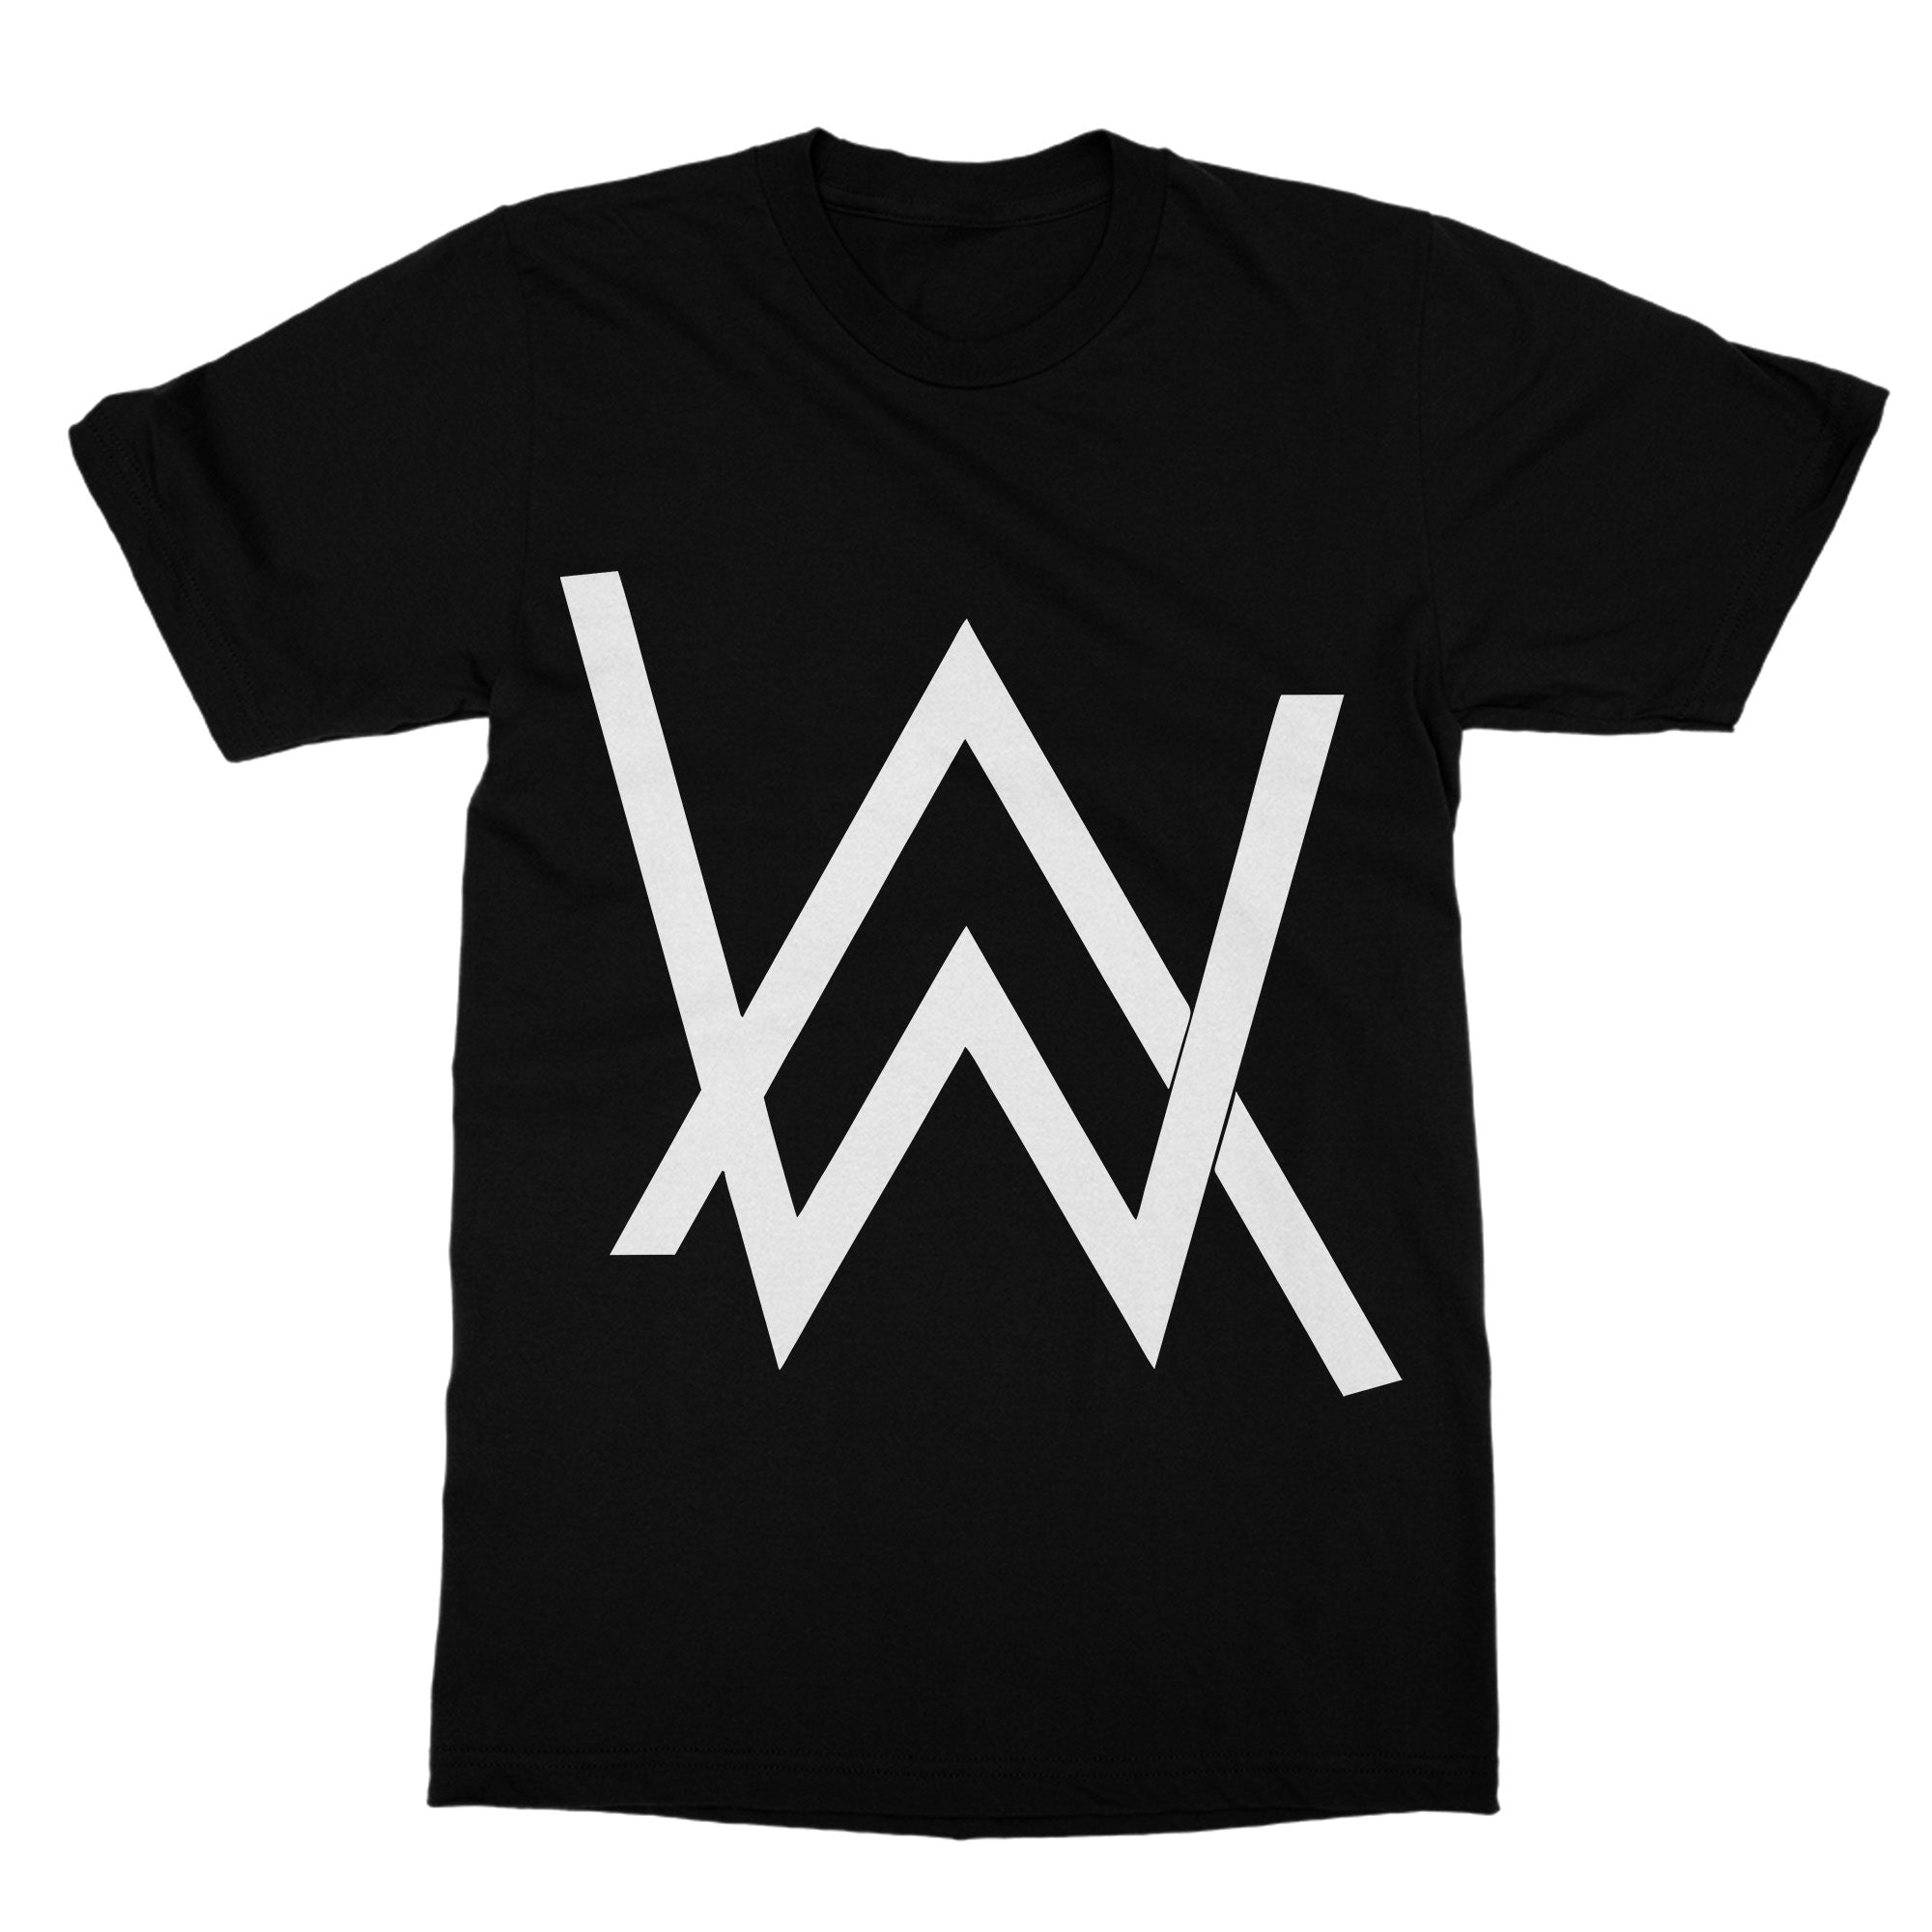 a3822d3ef Alan walker edm Music tshirt in India by silly punter ...